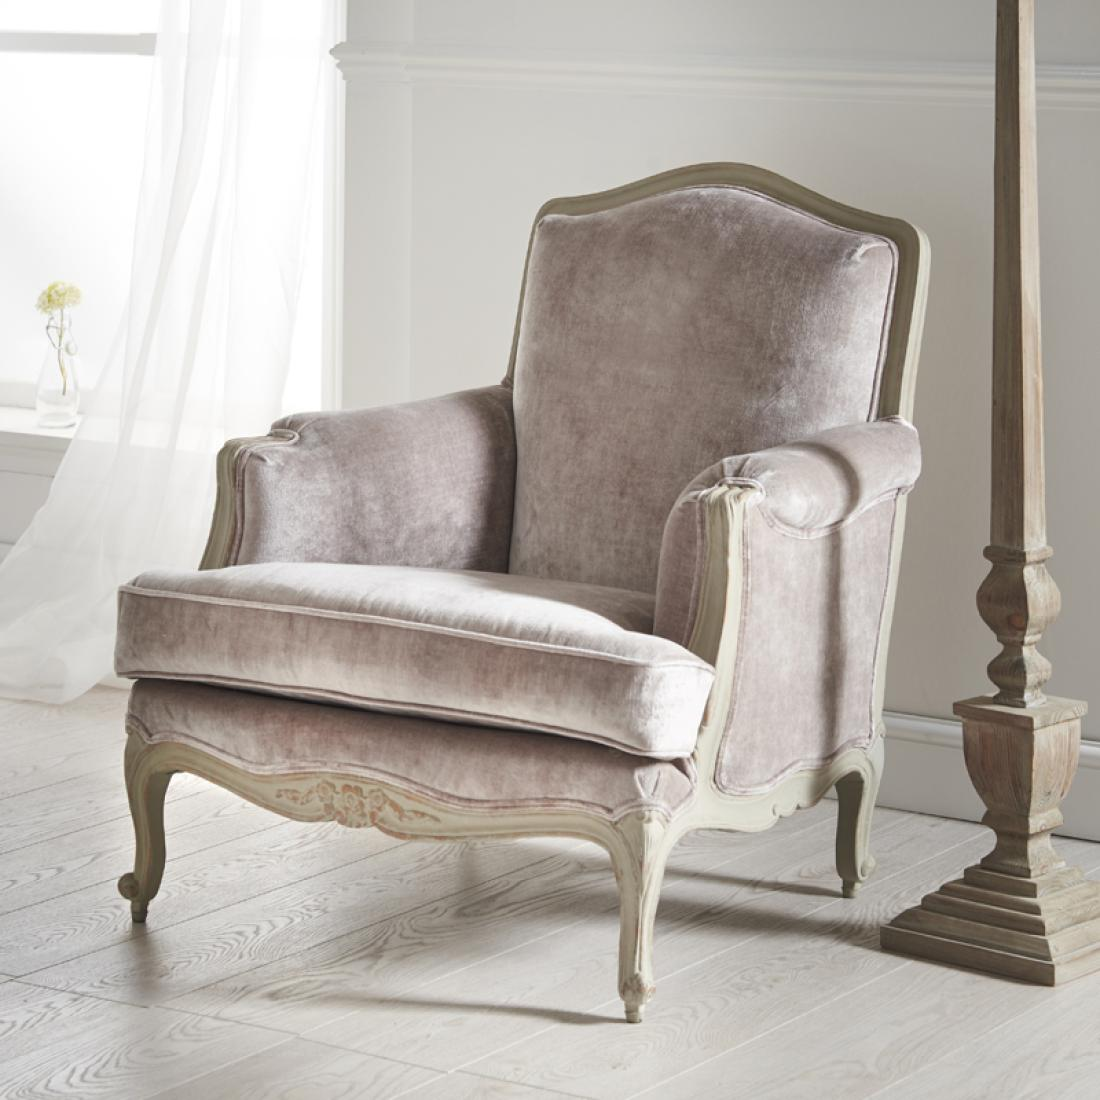 luxury velvet armchair. luxury velvet armchair  chairs and stools